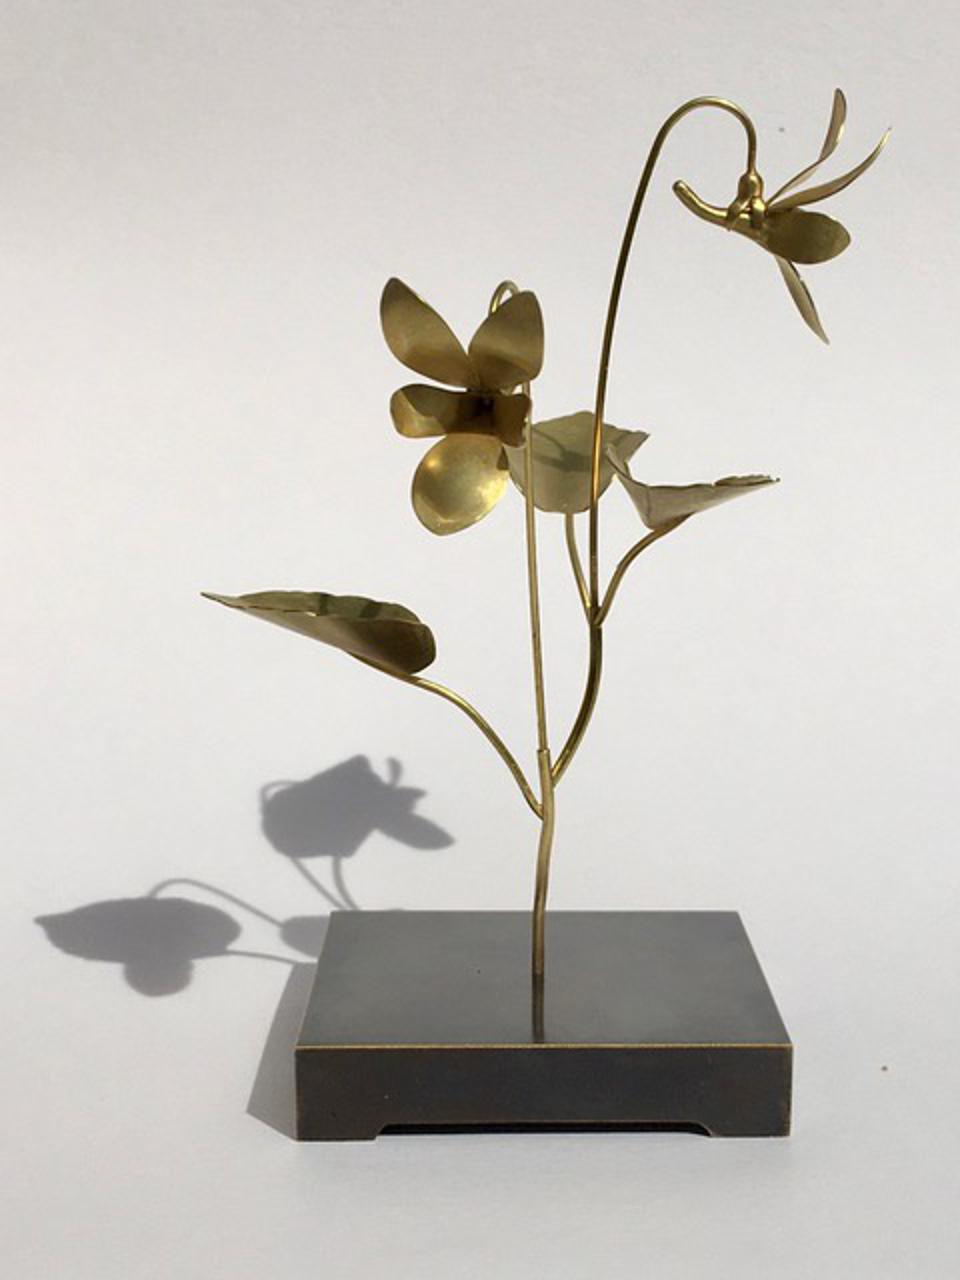 Against Nature: Violet Sculpture with Earrings, 2020 18k gold with patinated brass base, by Christopher Thompson-Royds